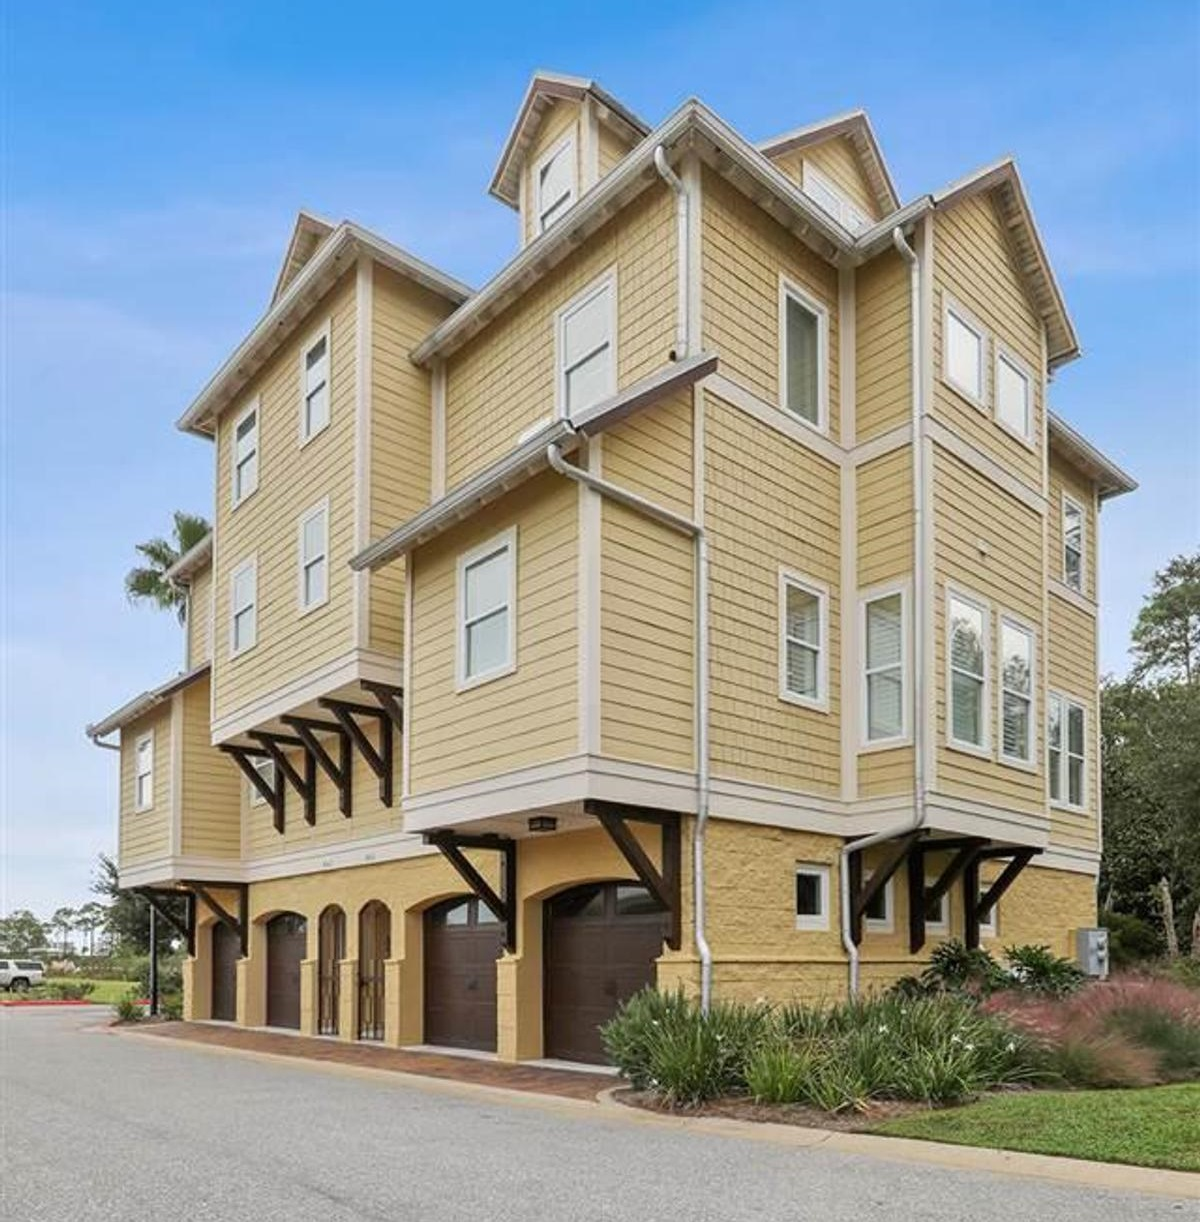 Exterior picture of The Grander, Orange Beach